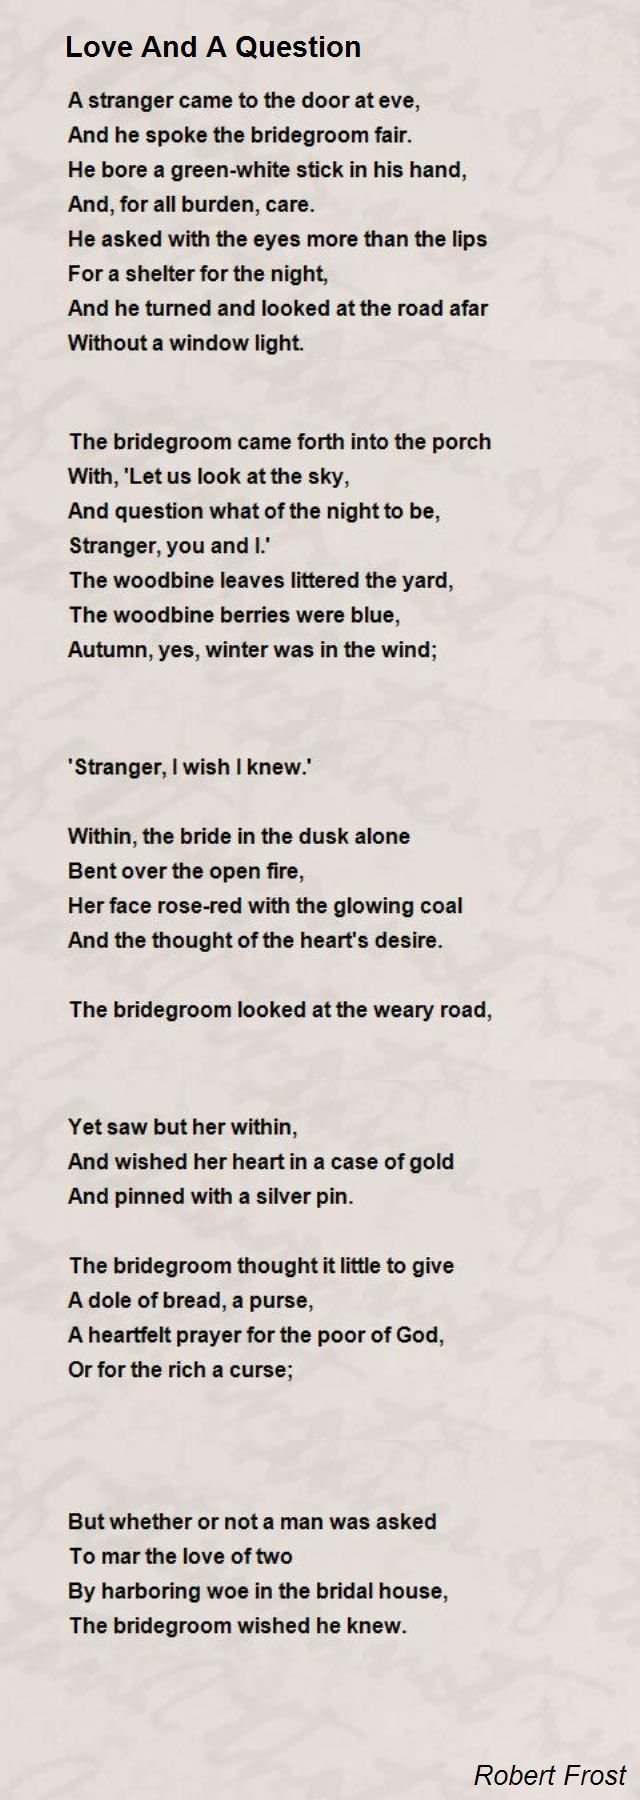 worksheet The Road Not Taken Worksheet 12 best poems and such images on pinterest african americans langston hughes poems